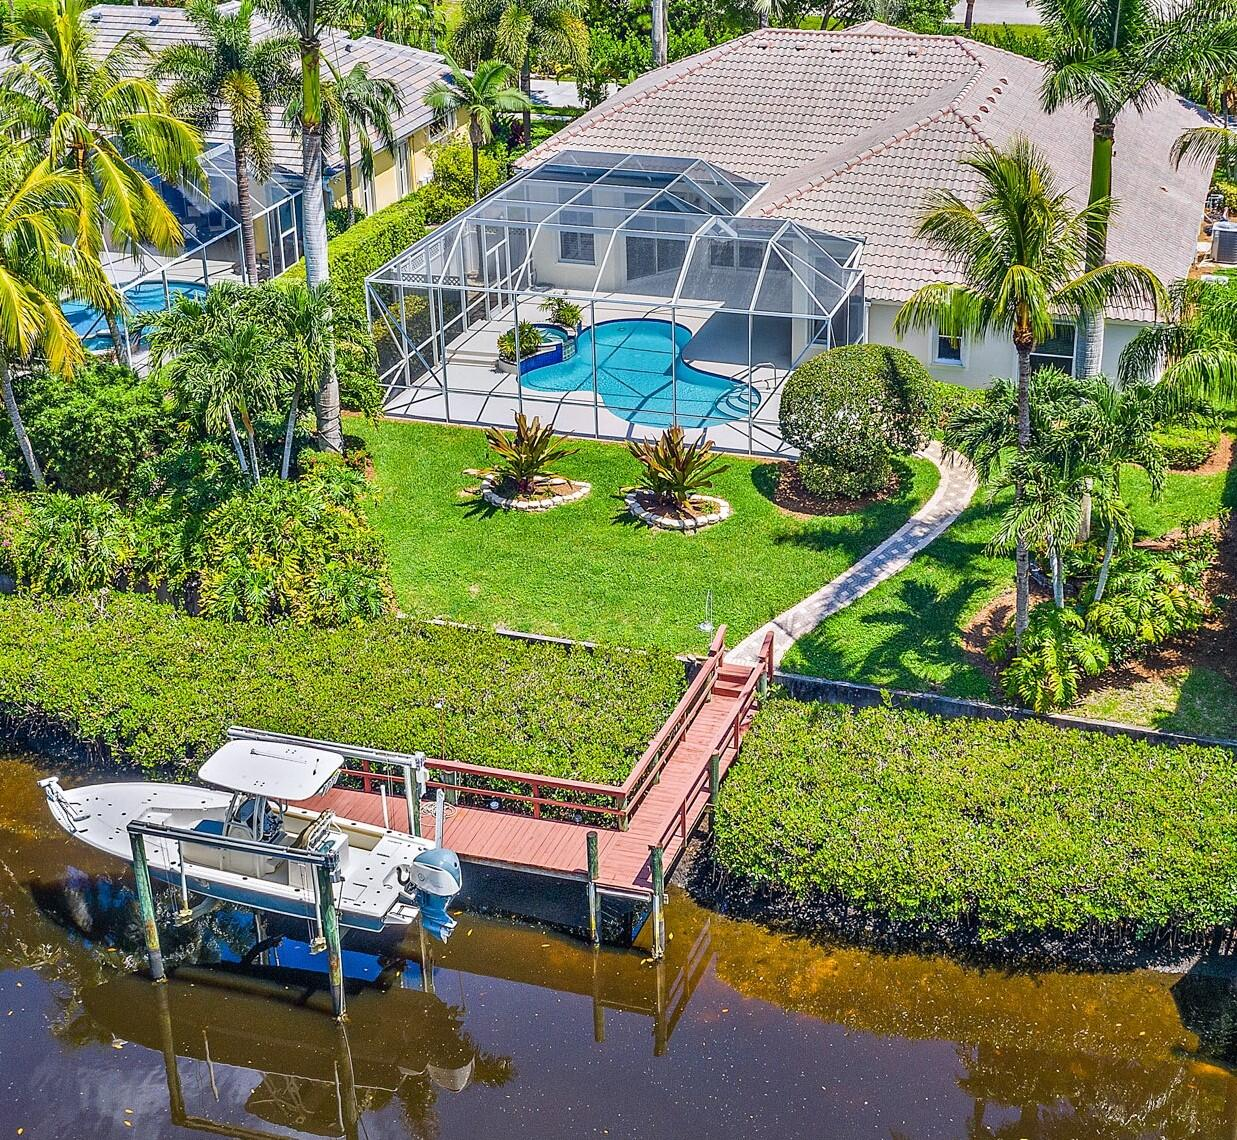 MUST RSVP FOR GATE ACCESS TO OPEN HOUSES Friday and Sat 12 to 3!! Totally Remodeled w/ Stunning Fixtures & Finishes Throughout! This Decorator Designed One Story Waterfront Home Is Located In The Exclusive Gated Community Loxahatchee Pointe. Some Features Include 4 Bedrooms Plus Office, 3 Full Bathrooms, 3 Car Garage, Screened In Patio w/ Covered  Lanai, Custom Pool & Spa, Impact Glass Doors, Beautiful Wood Floors, 95Ft Of Waterfrontage w/ No Fixed Bridges, 9,000Lb Boat Lift, Nice Size Yard, Gourmet Kitchen w/ Large Island, Gas Stove & Quartz Counter Tops, Butler Pantry w/ Wet Bar, NEW Roof  2021, Open / Split Floor Plan w/ Cathedral Ceilings & Plantation Shutters, Cabana Bath, Crown Molding, Epoxy Garage Floor, Paver Driveway, LOW County Taxes, A Rated Schools, Community Tennis & Basketball Court, Close To Great Restaurants, High End Shopping, Golf Courses, Amazing Fishing, Boating & Jupiter Beaches. Master Suite Has Access To Pool, 2 Walk In Closets w/ Built Ins, Private Water Closet, Double Sinks. This Is Florida Living At Its Finest!!